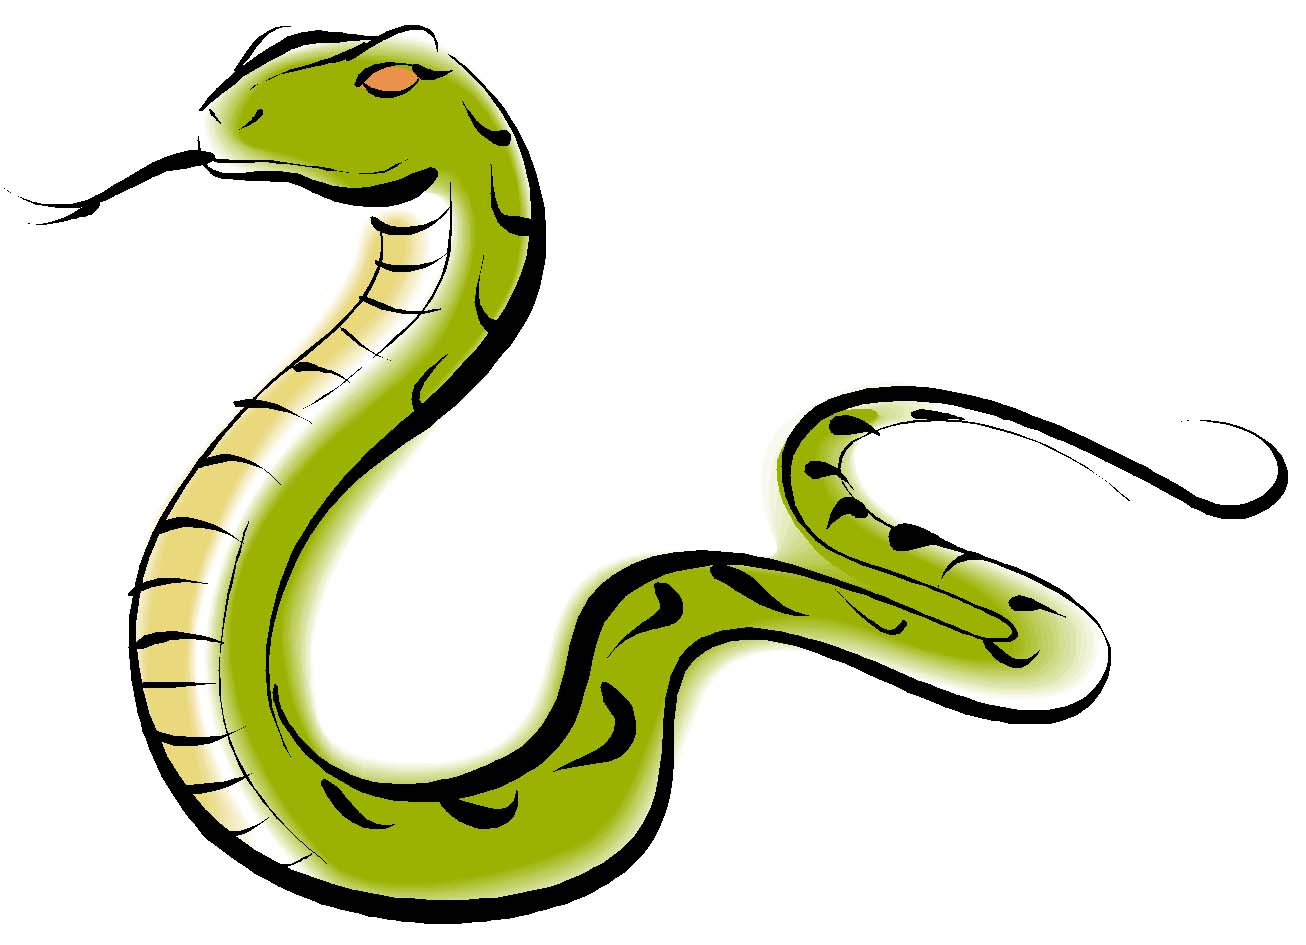 49 images of Anaconda Clip Art . You can use these free cliparts for ...